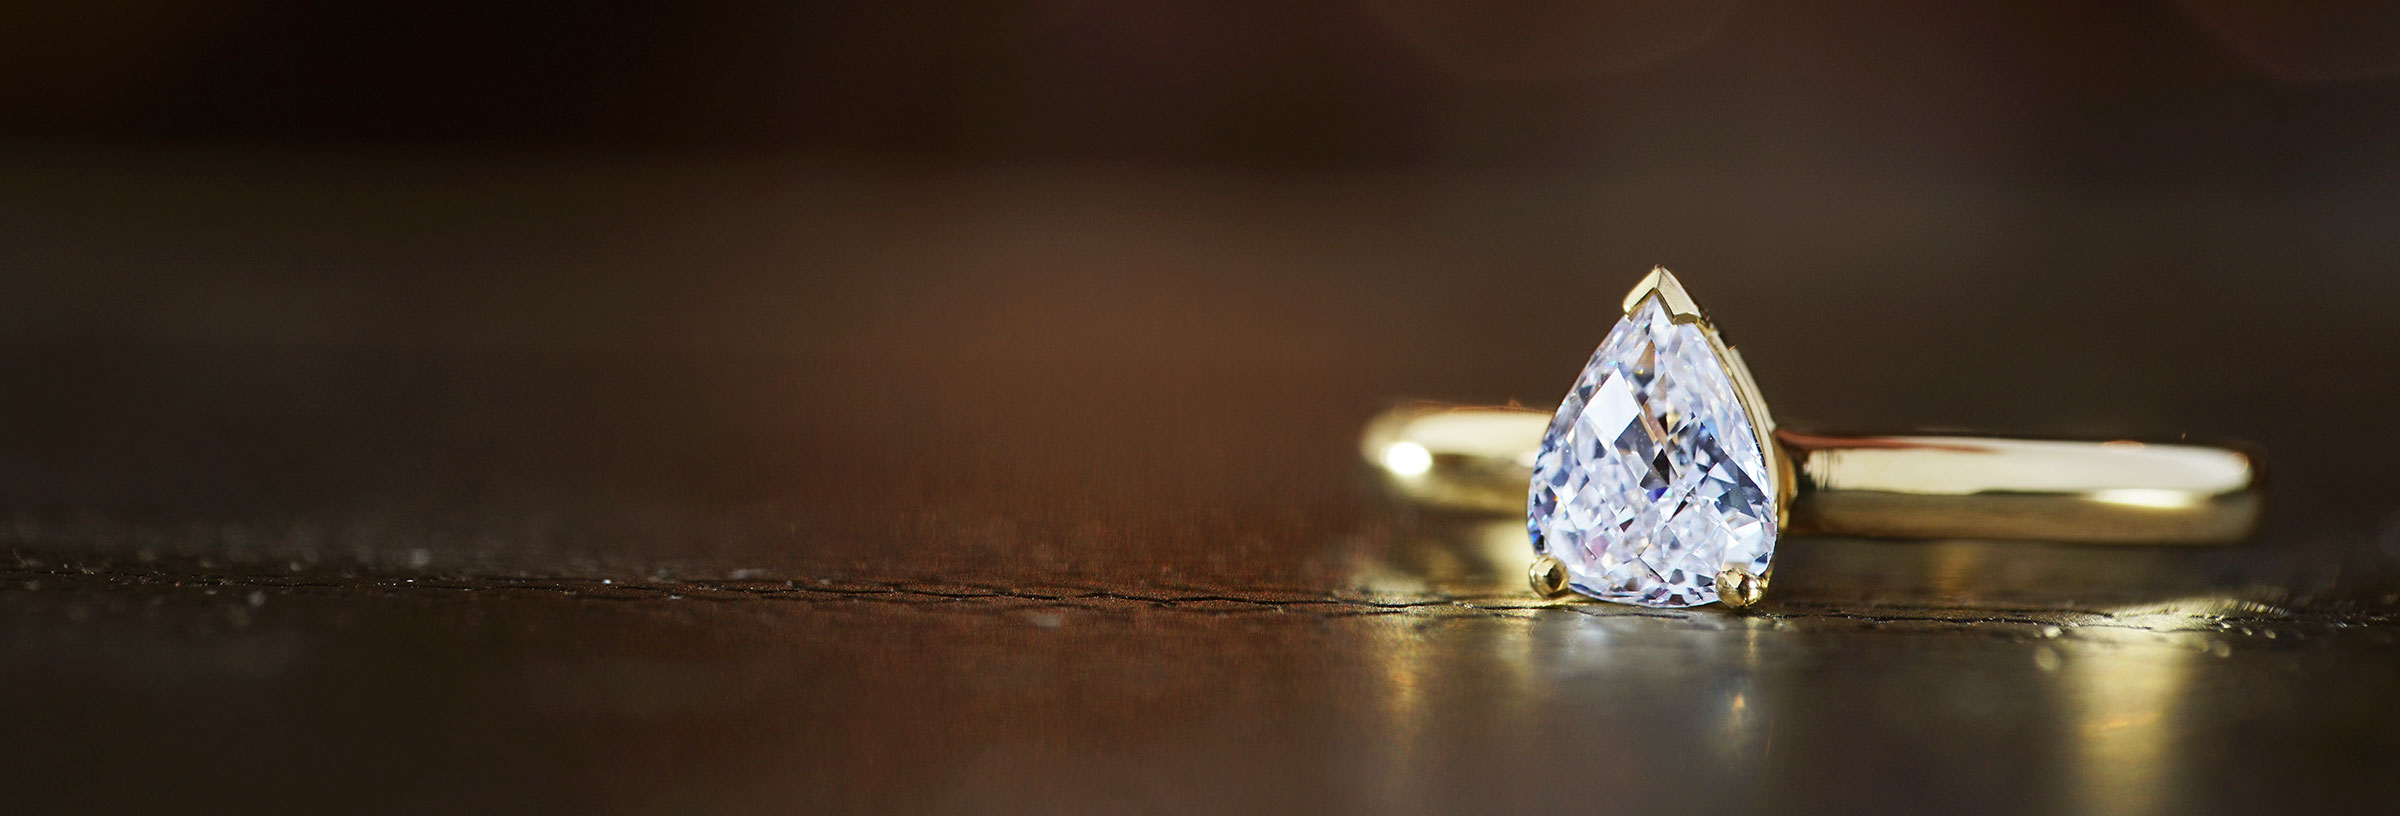 yellow-gold-briolette-cut-pear-shaped-diamond-engagement-ring